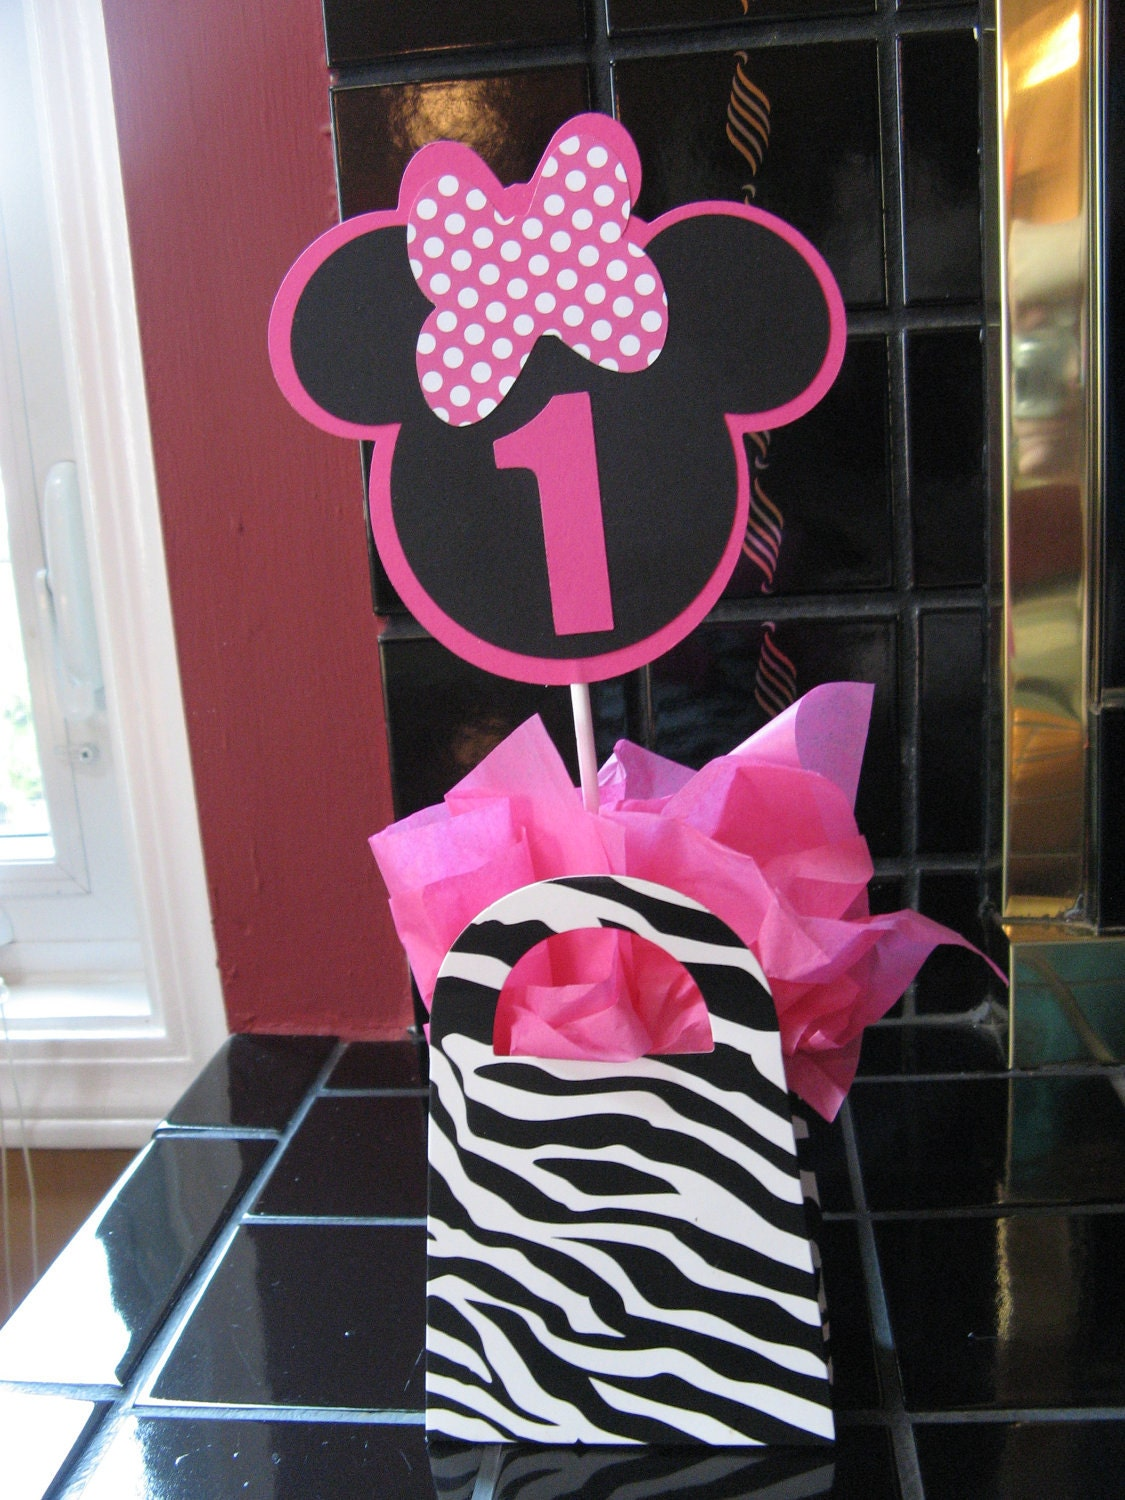 Zebra and minnie mouse table decoration by missdaisyw on etsy for Decoration zebre